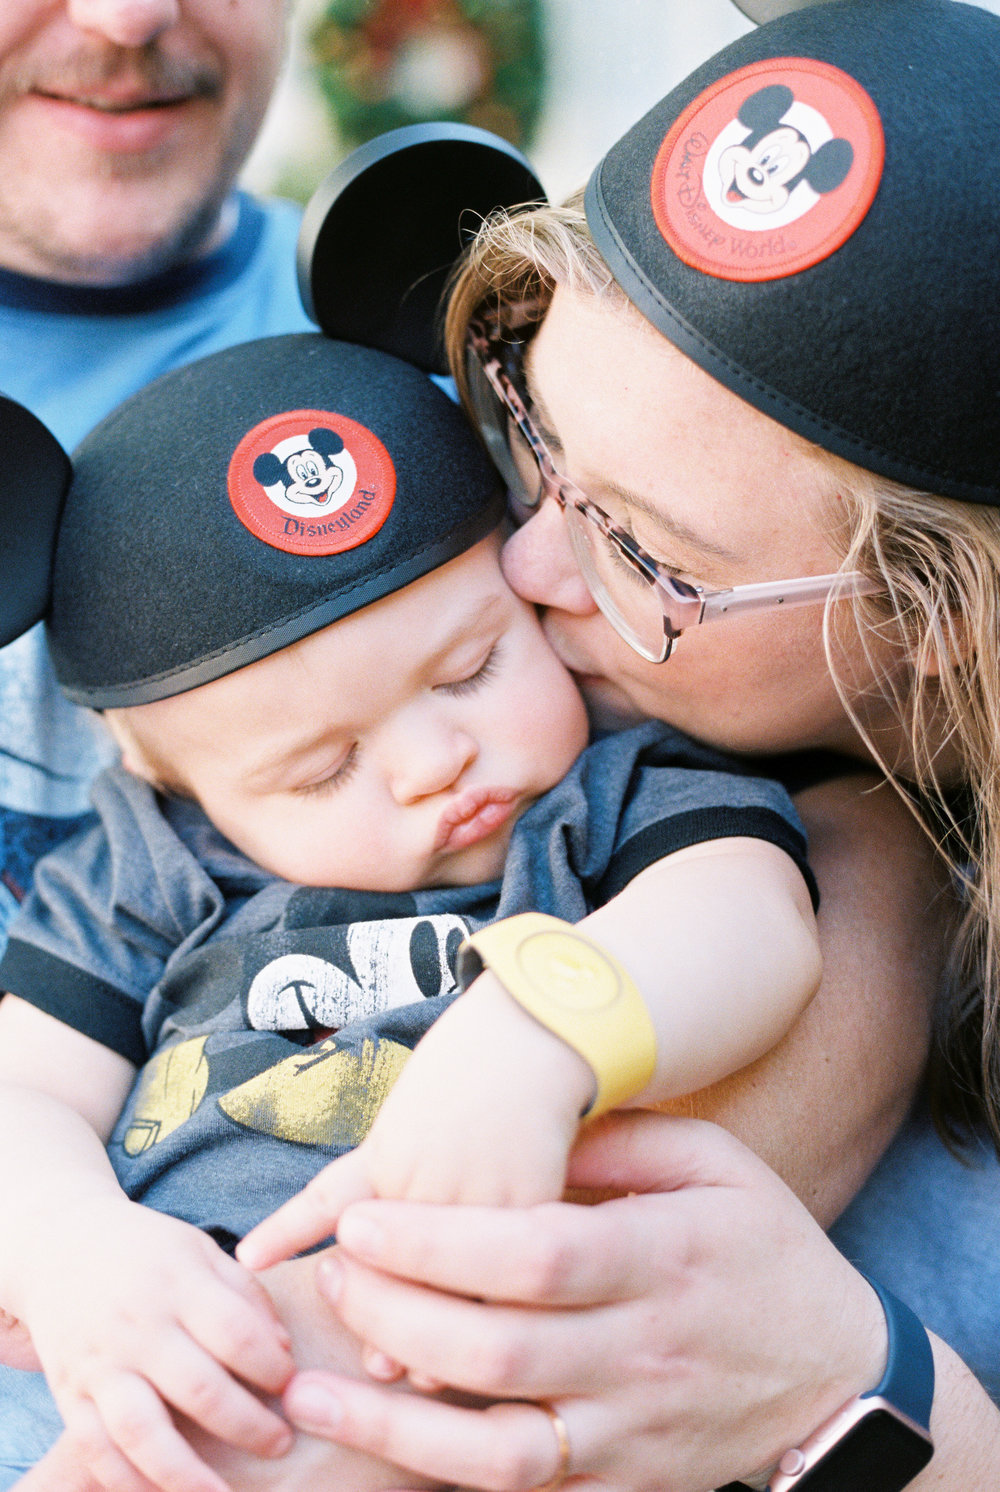 Disney Days $500 - - Disney Sessions on select Disney days (Tuesday or Wednesday).- Any time after 4:00 PM.- Any 1 of the 4 theme parks.- 2 hours of coverage.- Online downloadable gallery.- Print Release.